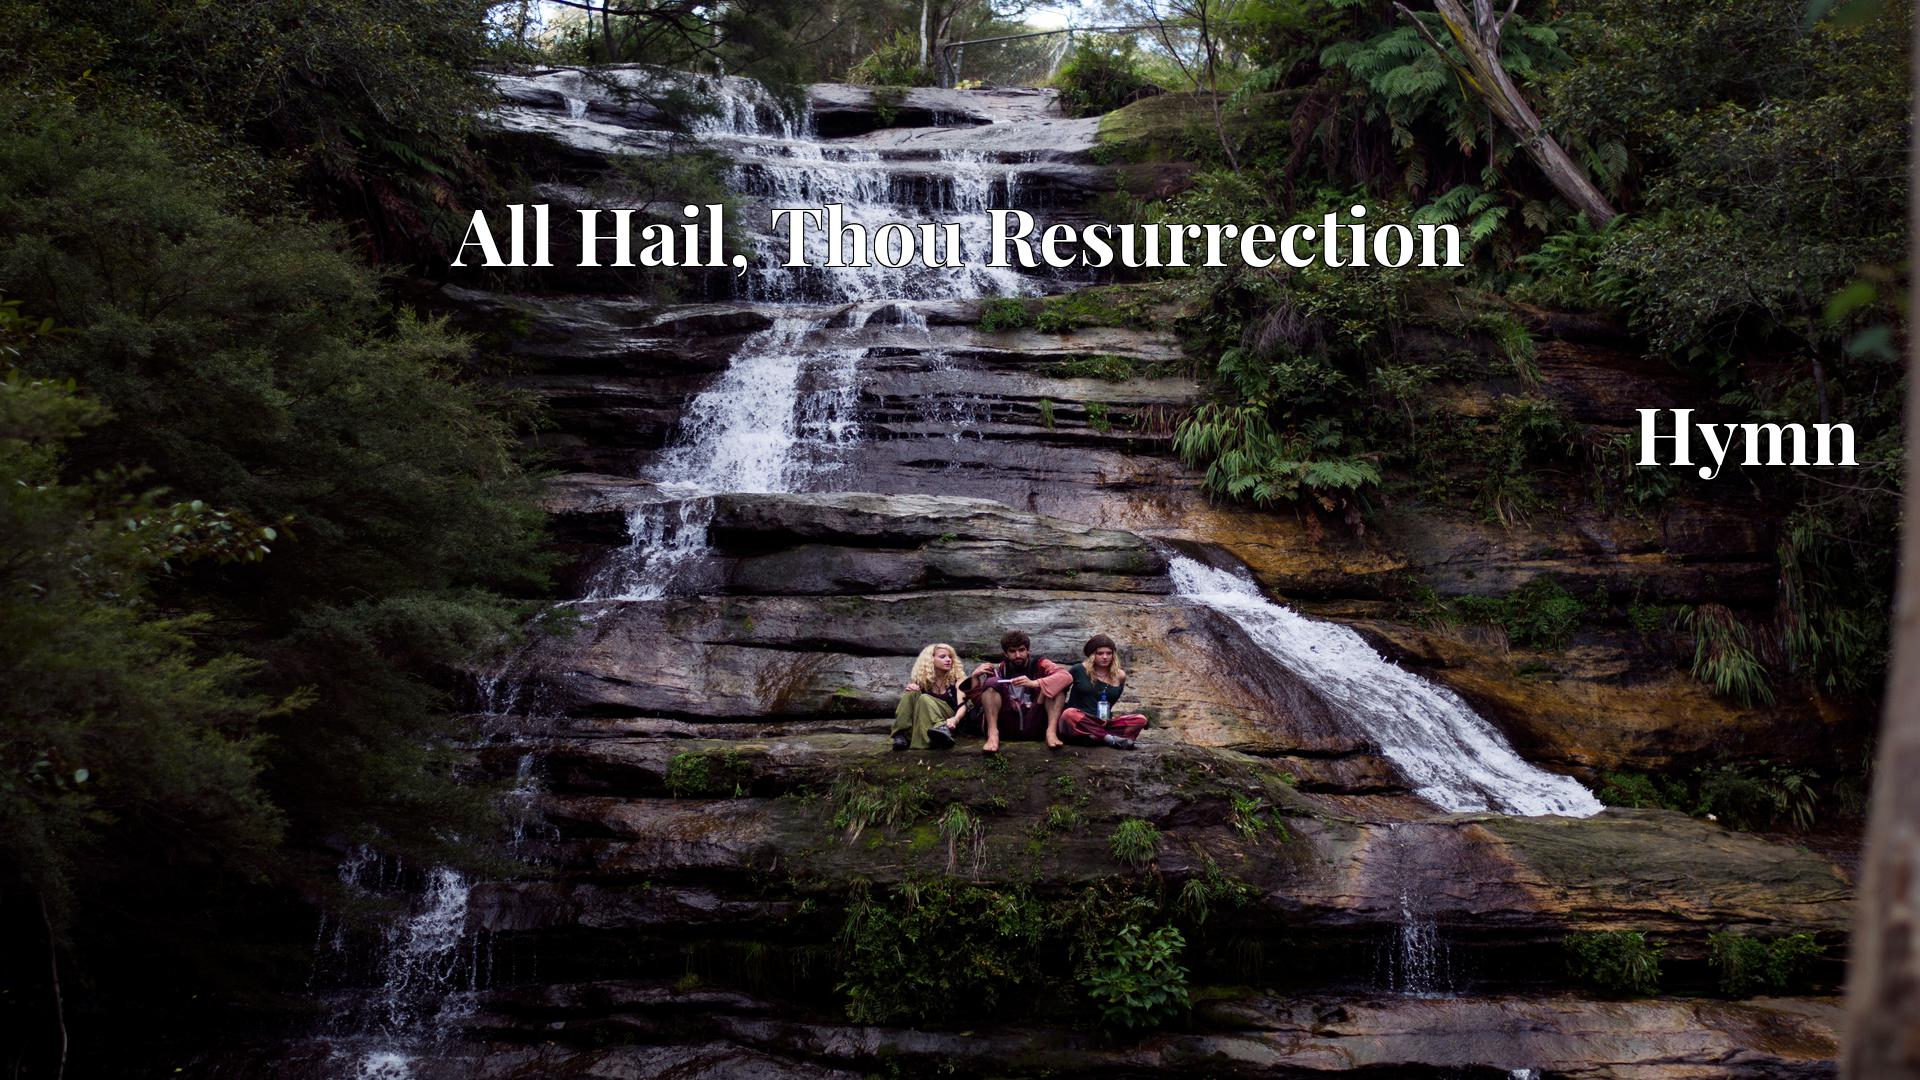 All Hail, Thou Resurrection - Hymn